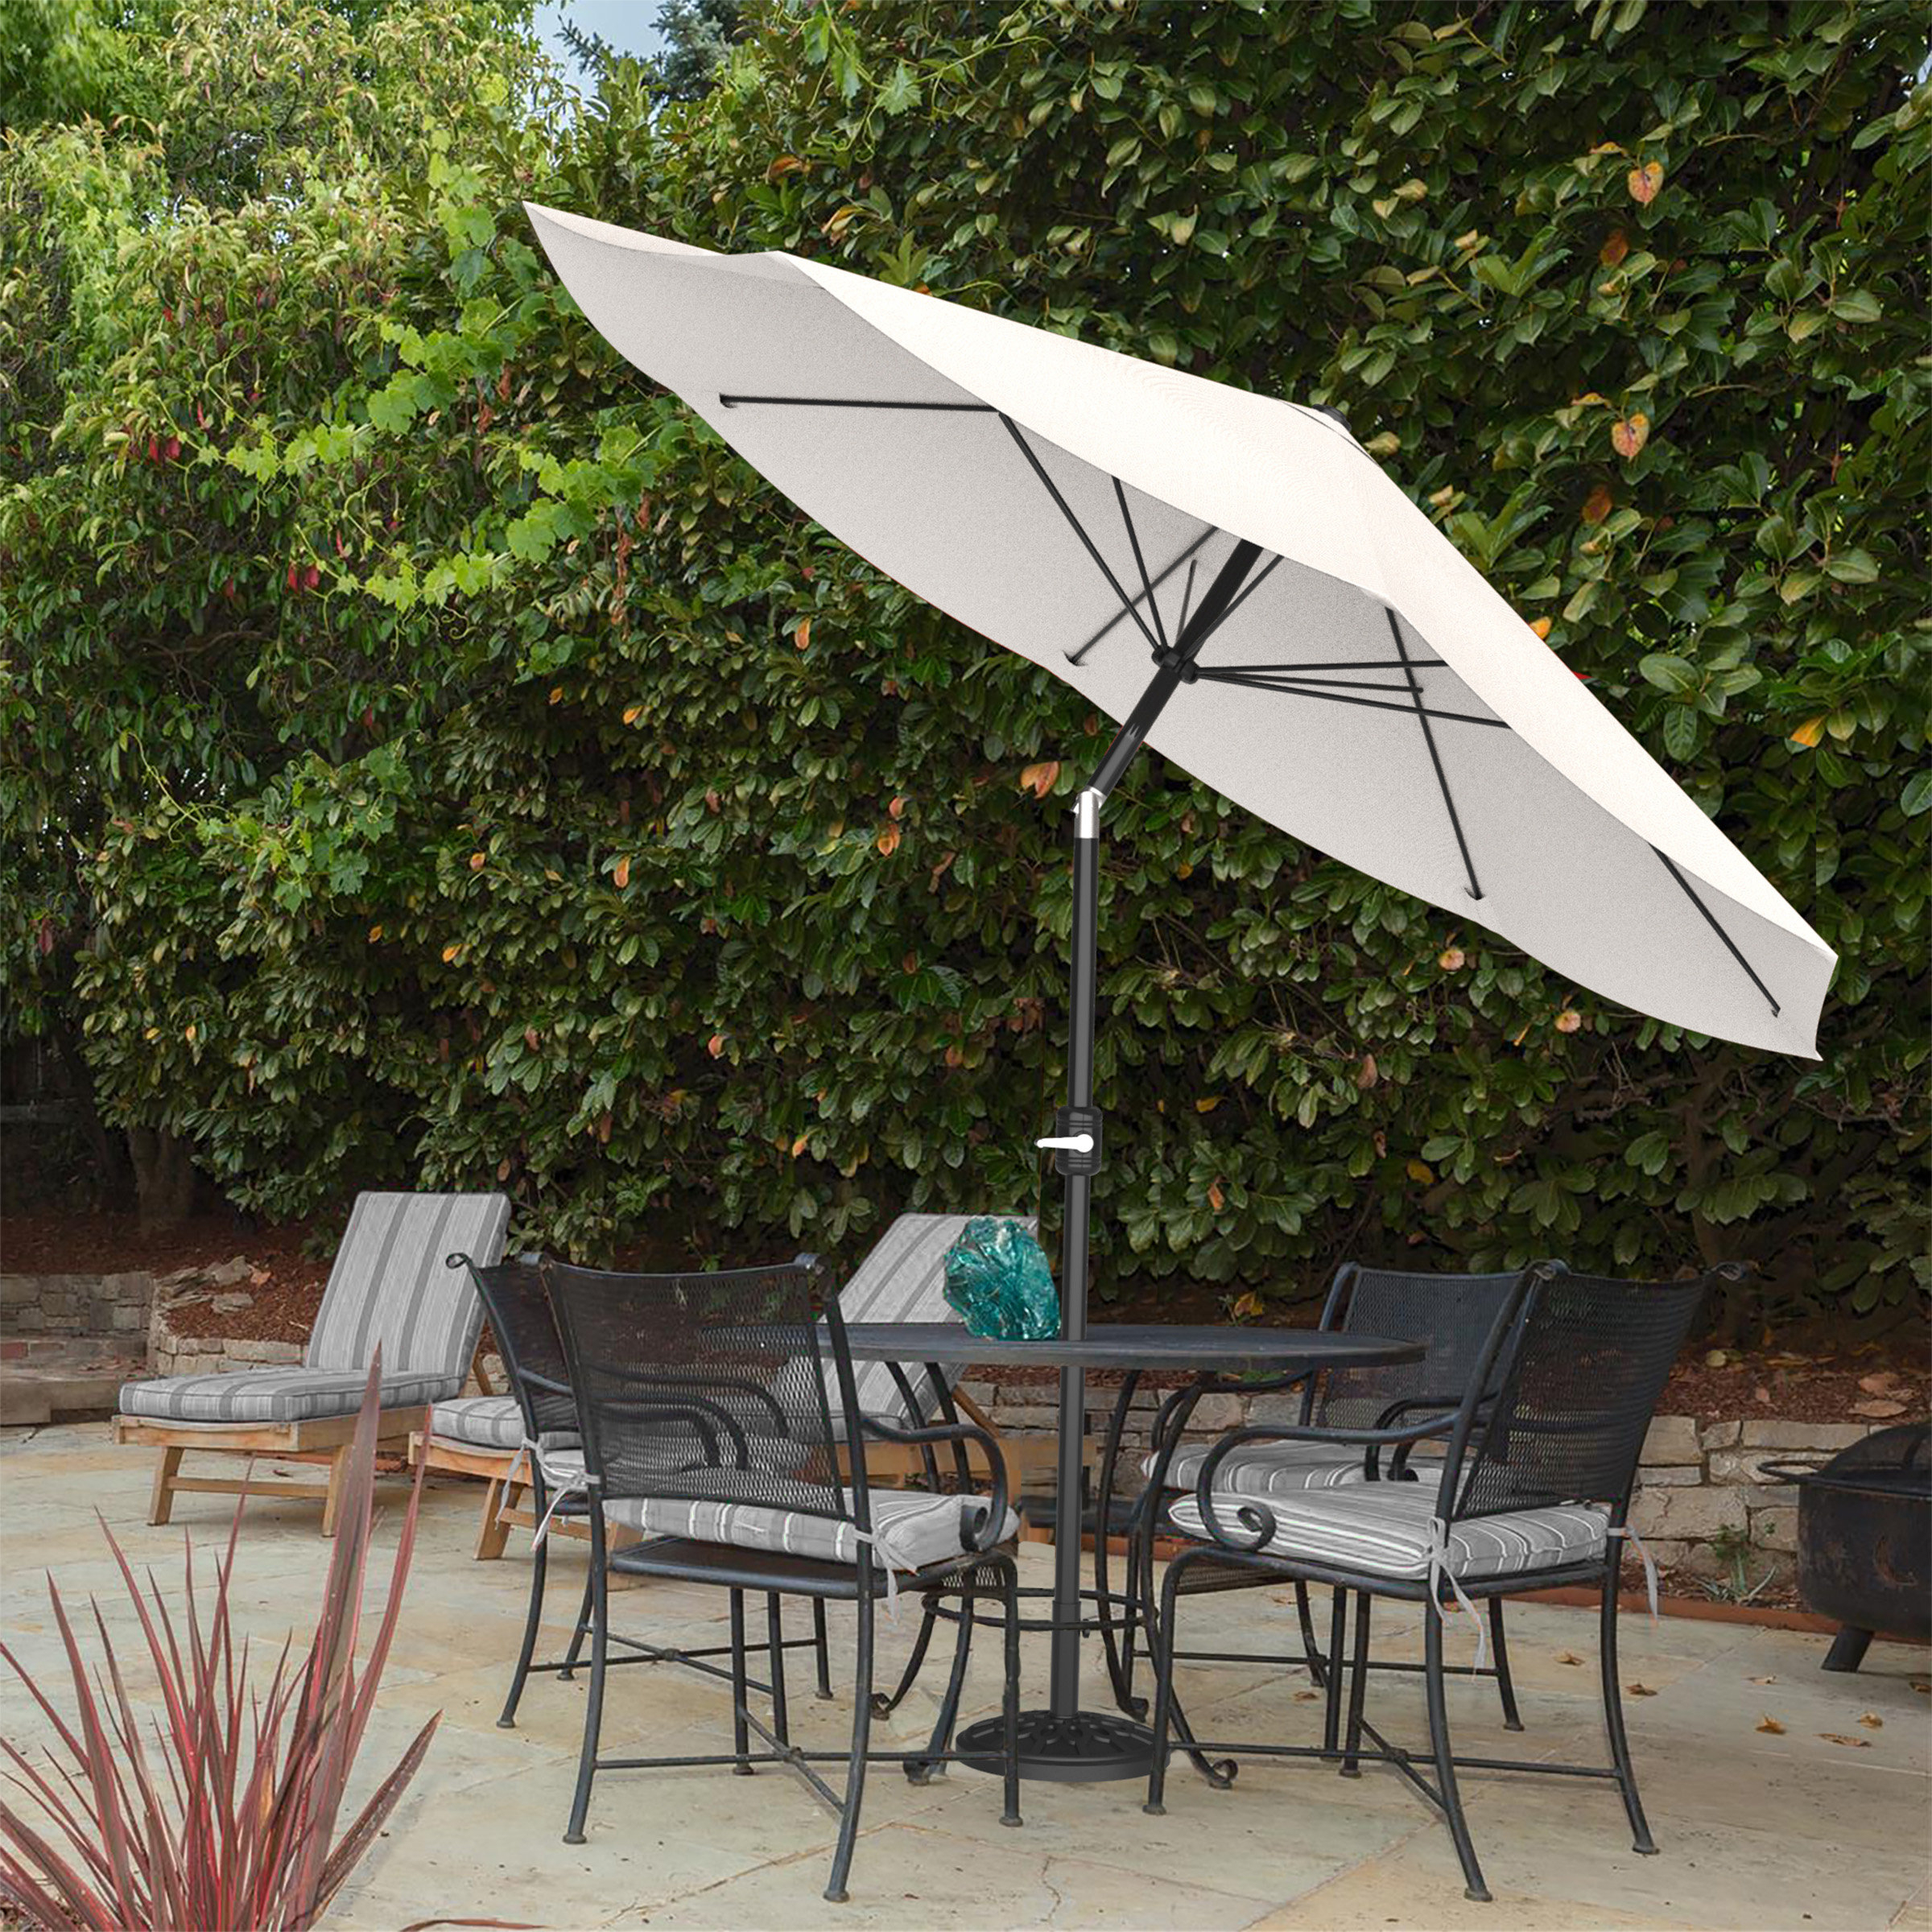 Mucci Madilyn Market Sunbrella Umbrellas Intended For Newest Kelton 10' Market Umbrella (View 14 of 20)